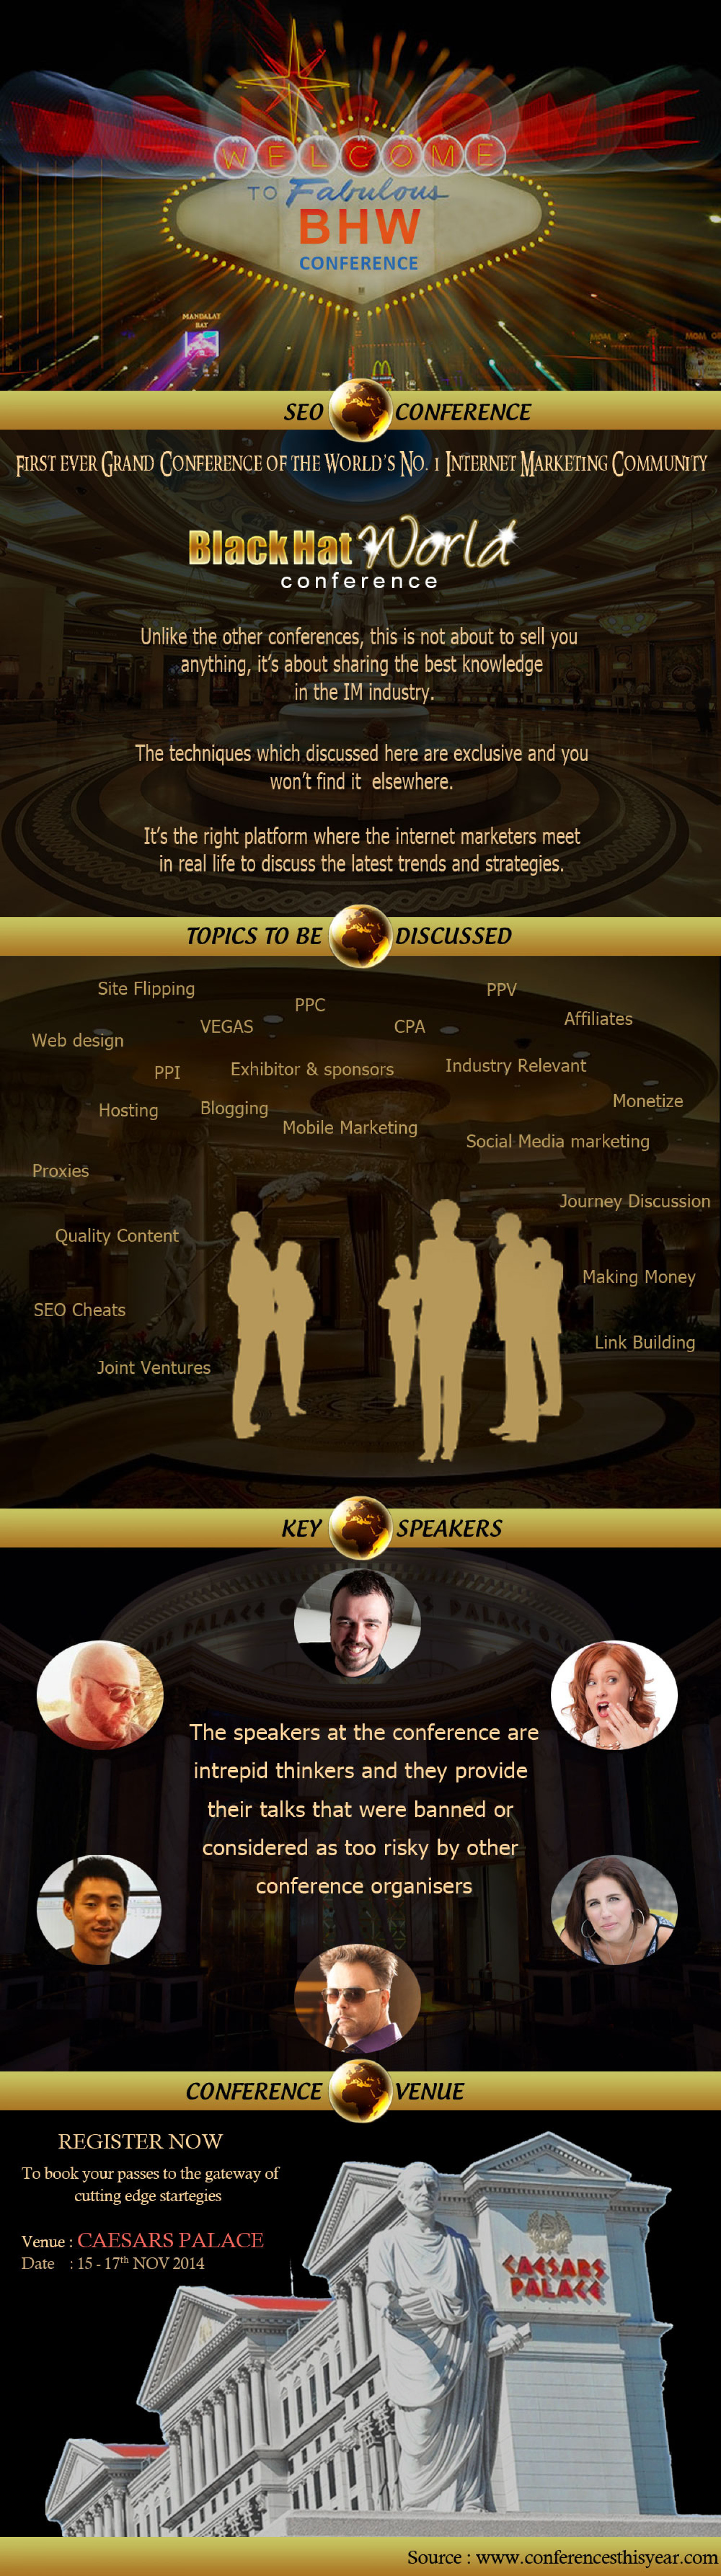 Black Hat World Conference Infographic